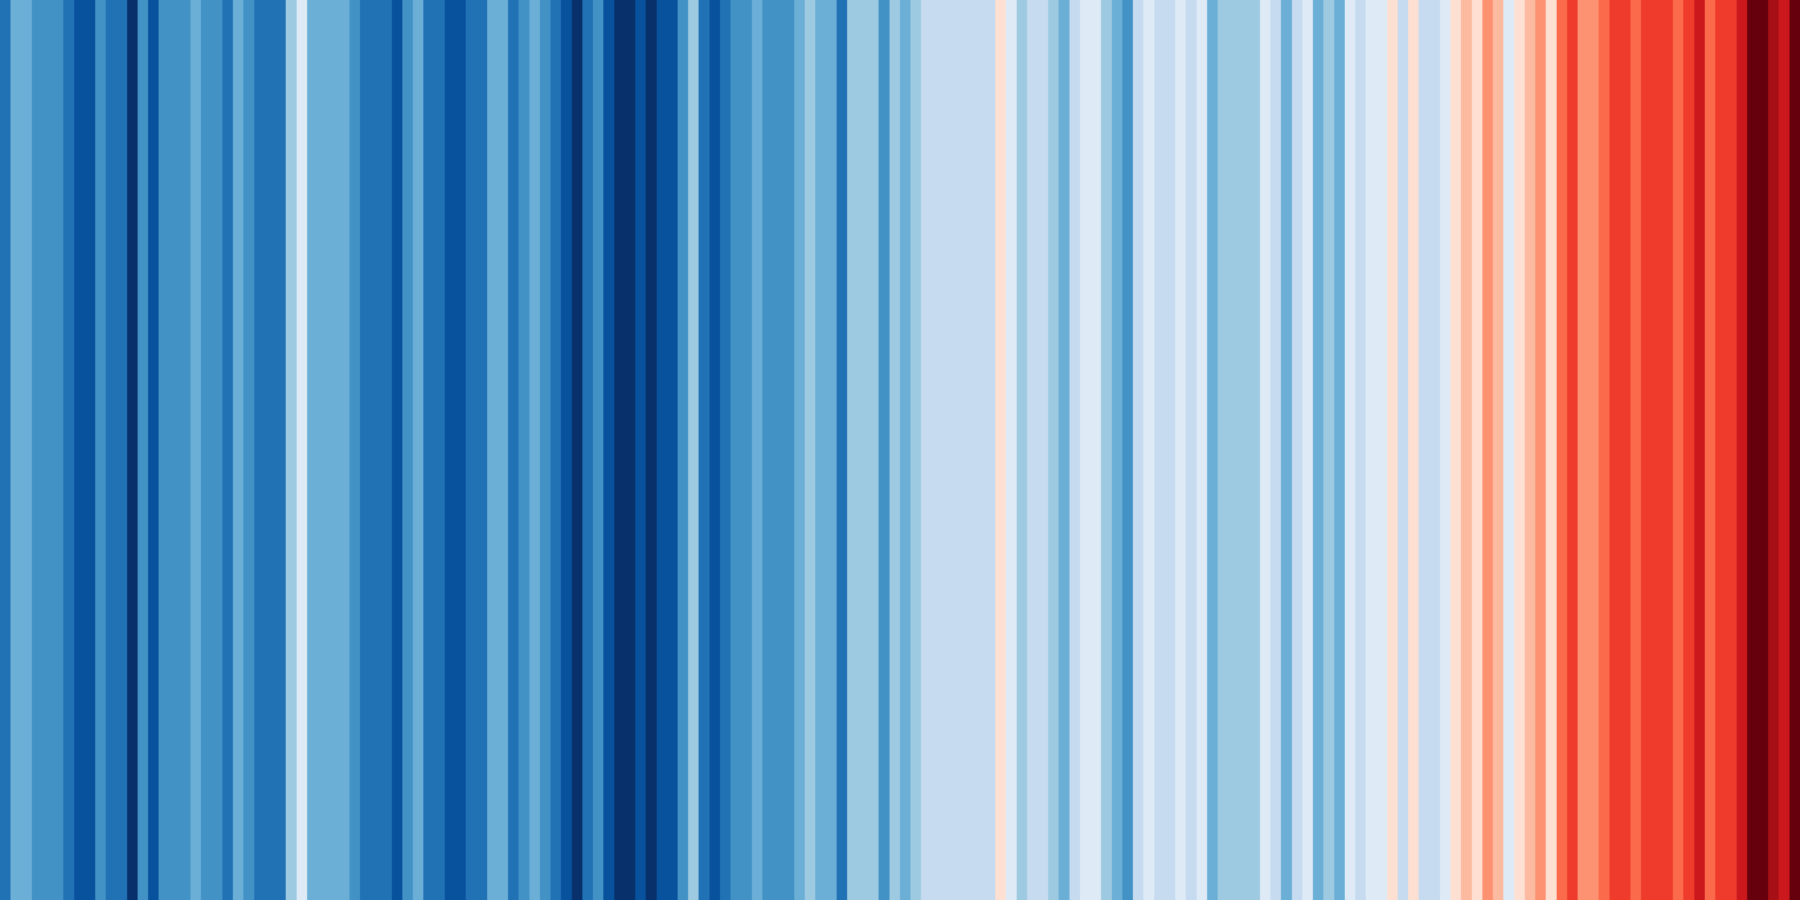 Global Warming Stripes graphic